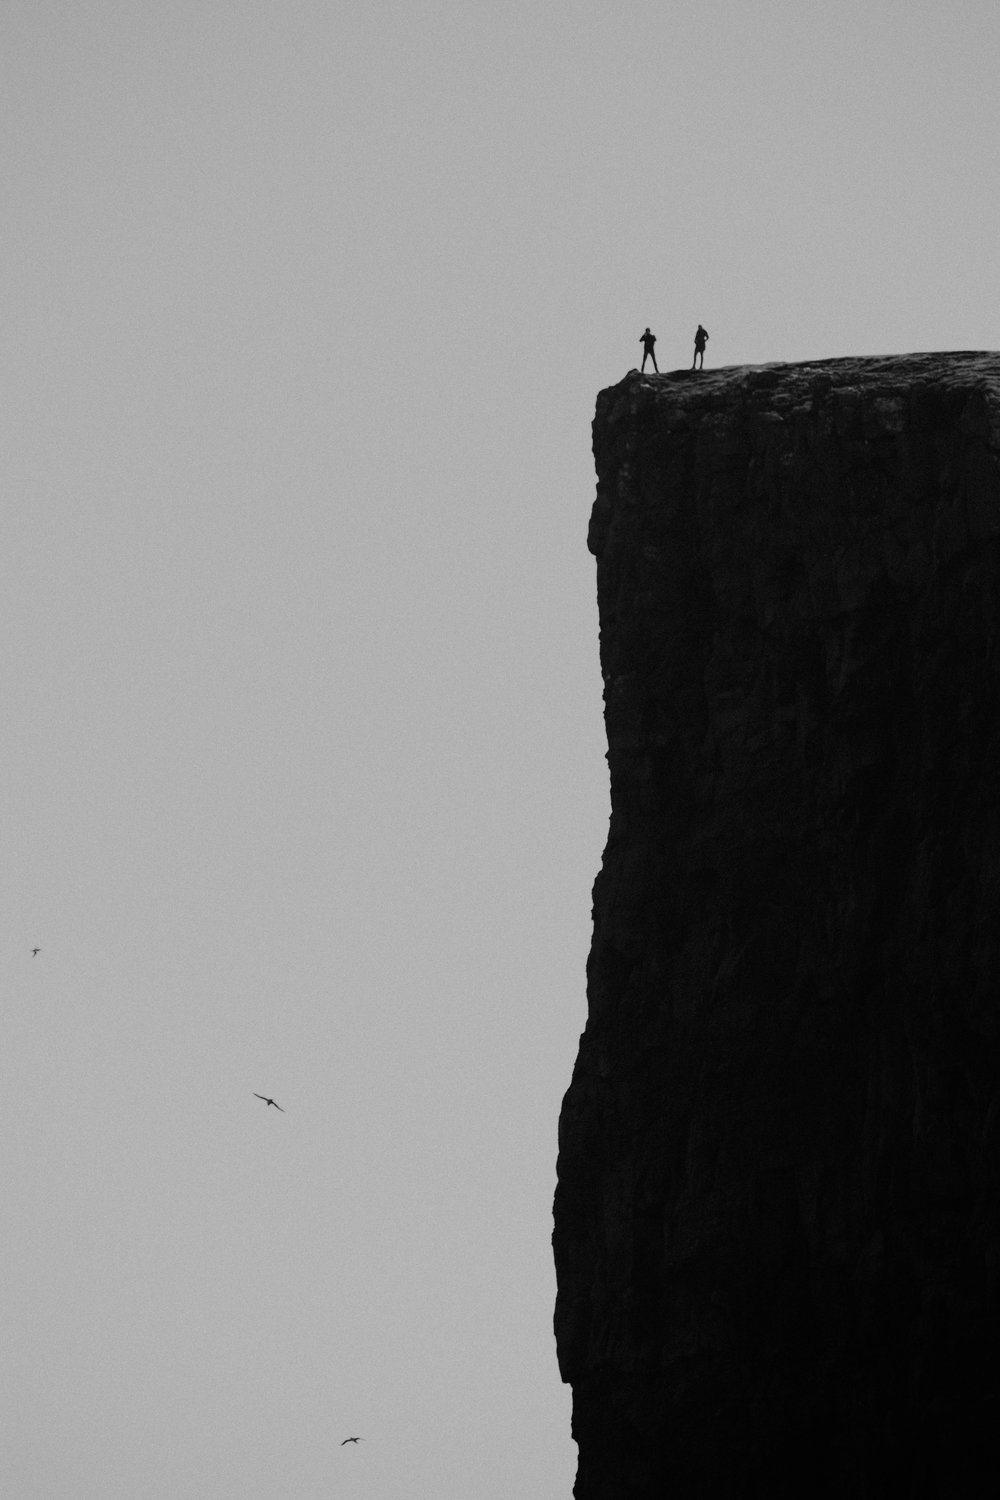 I saw these two on the edge of the cliff at trælanípa above lake sørvágsvatn. thought they had a death wish at first getting so close to the edge. the next picture shows you what they were looking at and what I eventually hiked to